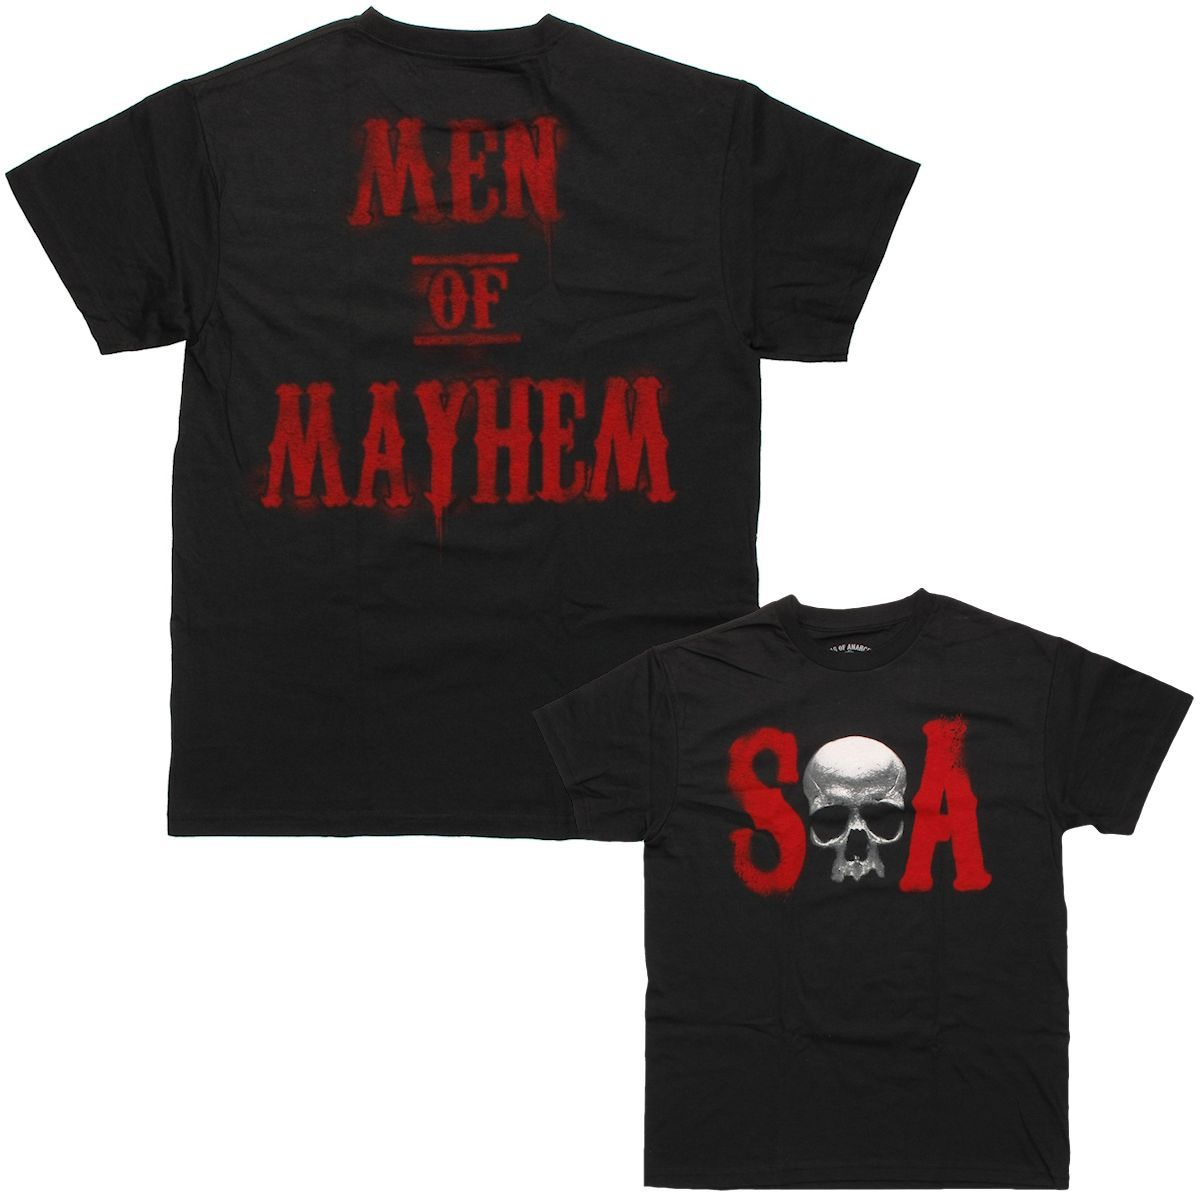 Sons Of Anarchy Soa Skull Men Mayhem T Shirt Shirts T Shirt Types Of Shirts